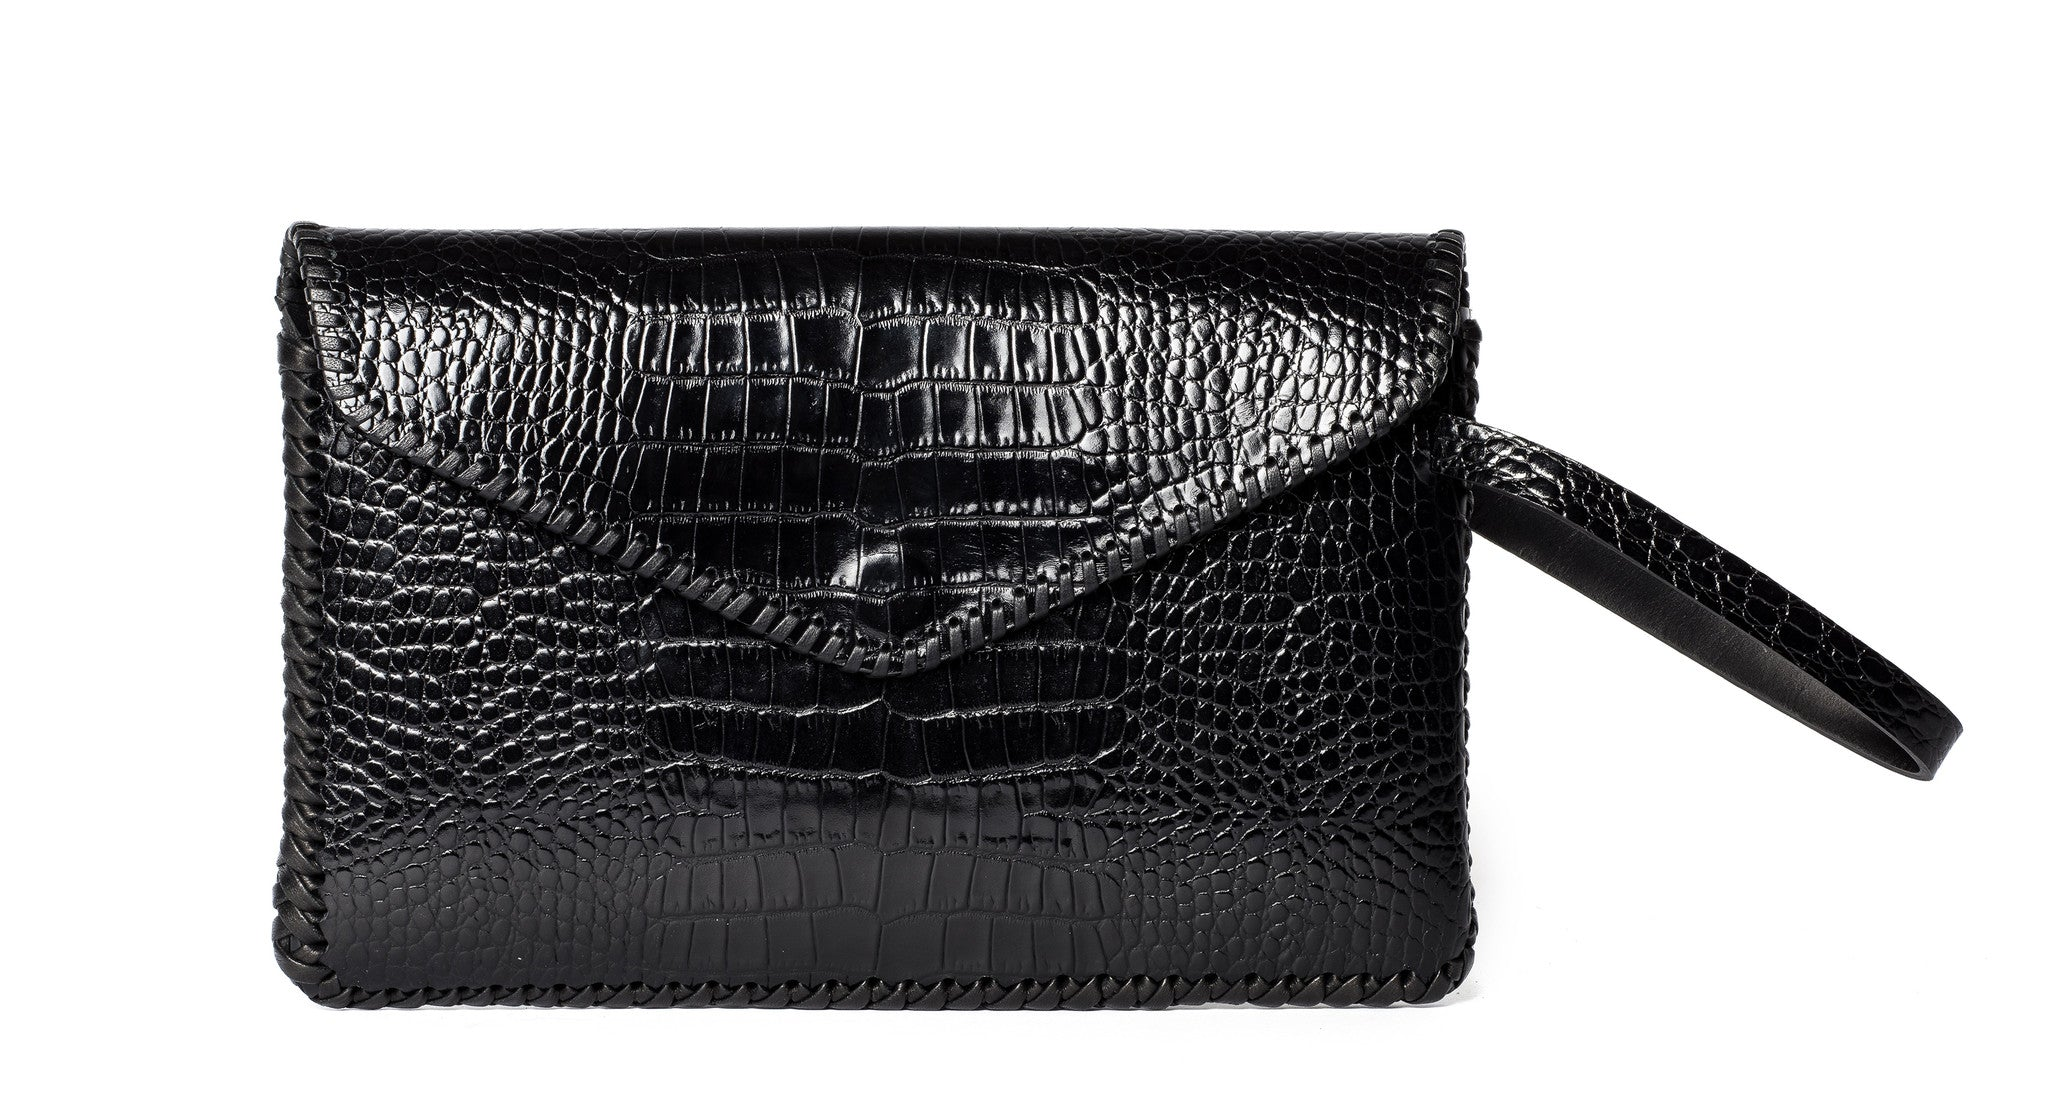 Whipstitch Midnight Rider Clutch Embossed croc Cowhide Leather Wendy Nichol Handbag Purse Designer Handmade in NYC Evening Bag Red Carpet Custom